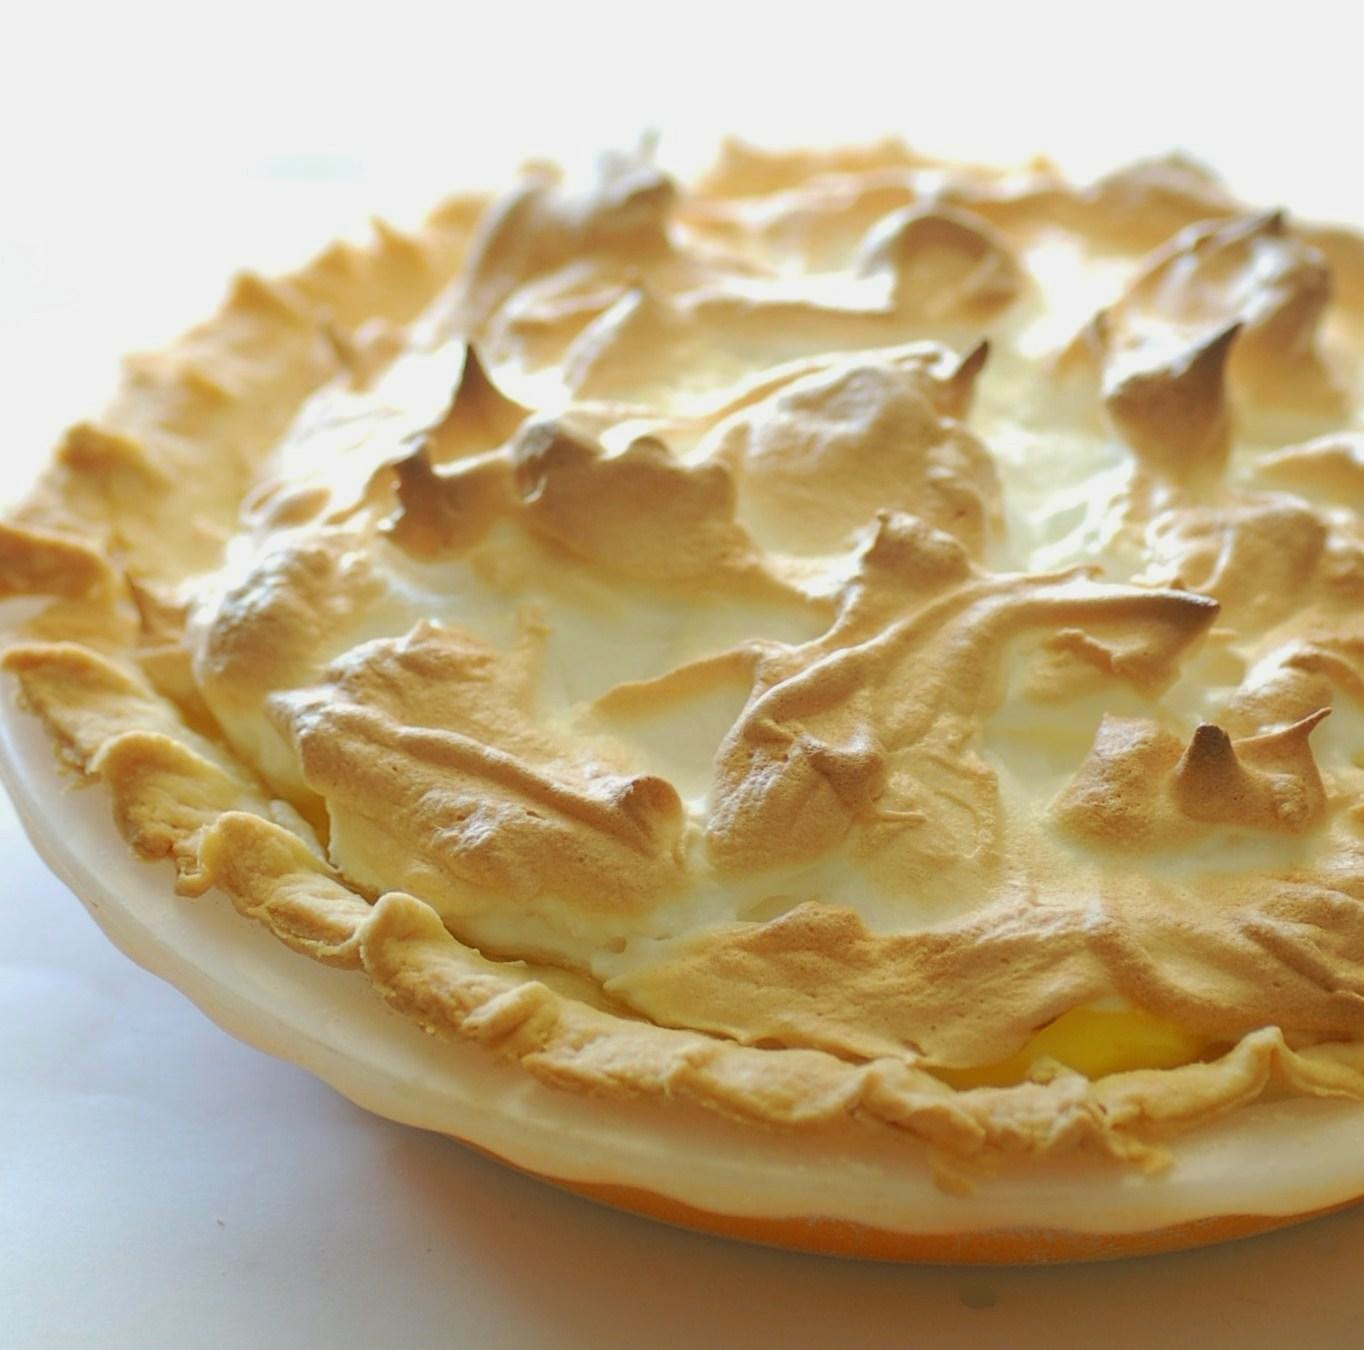 Makanan Lemon Meringue Pie